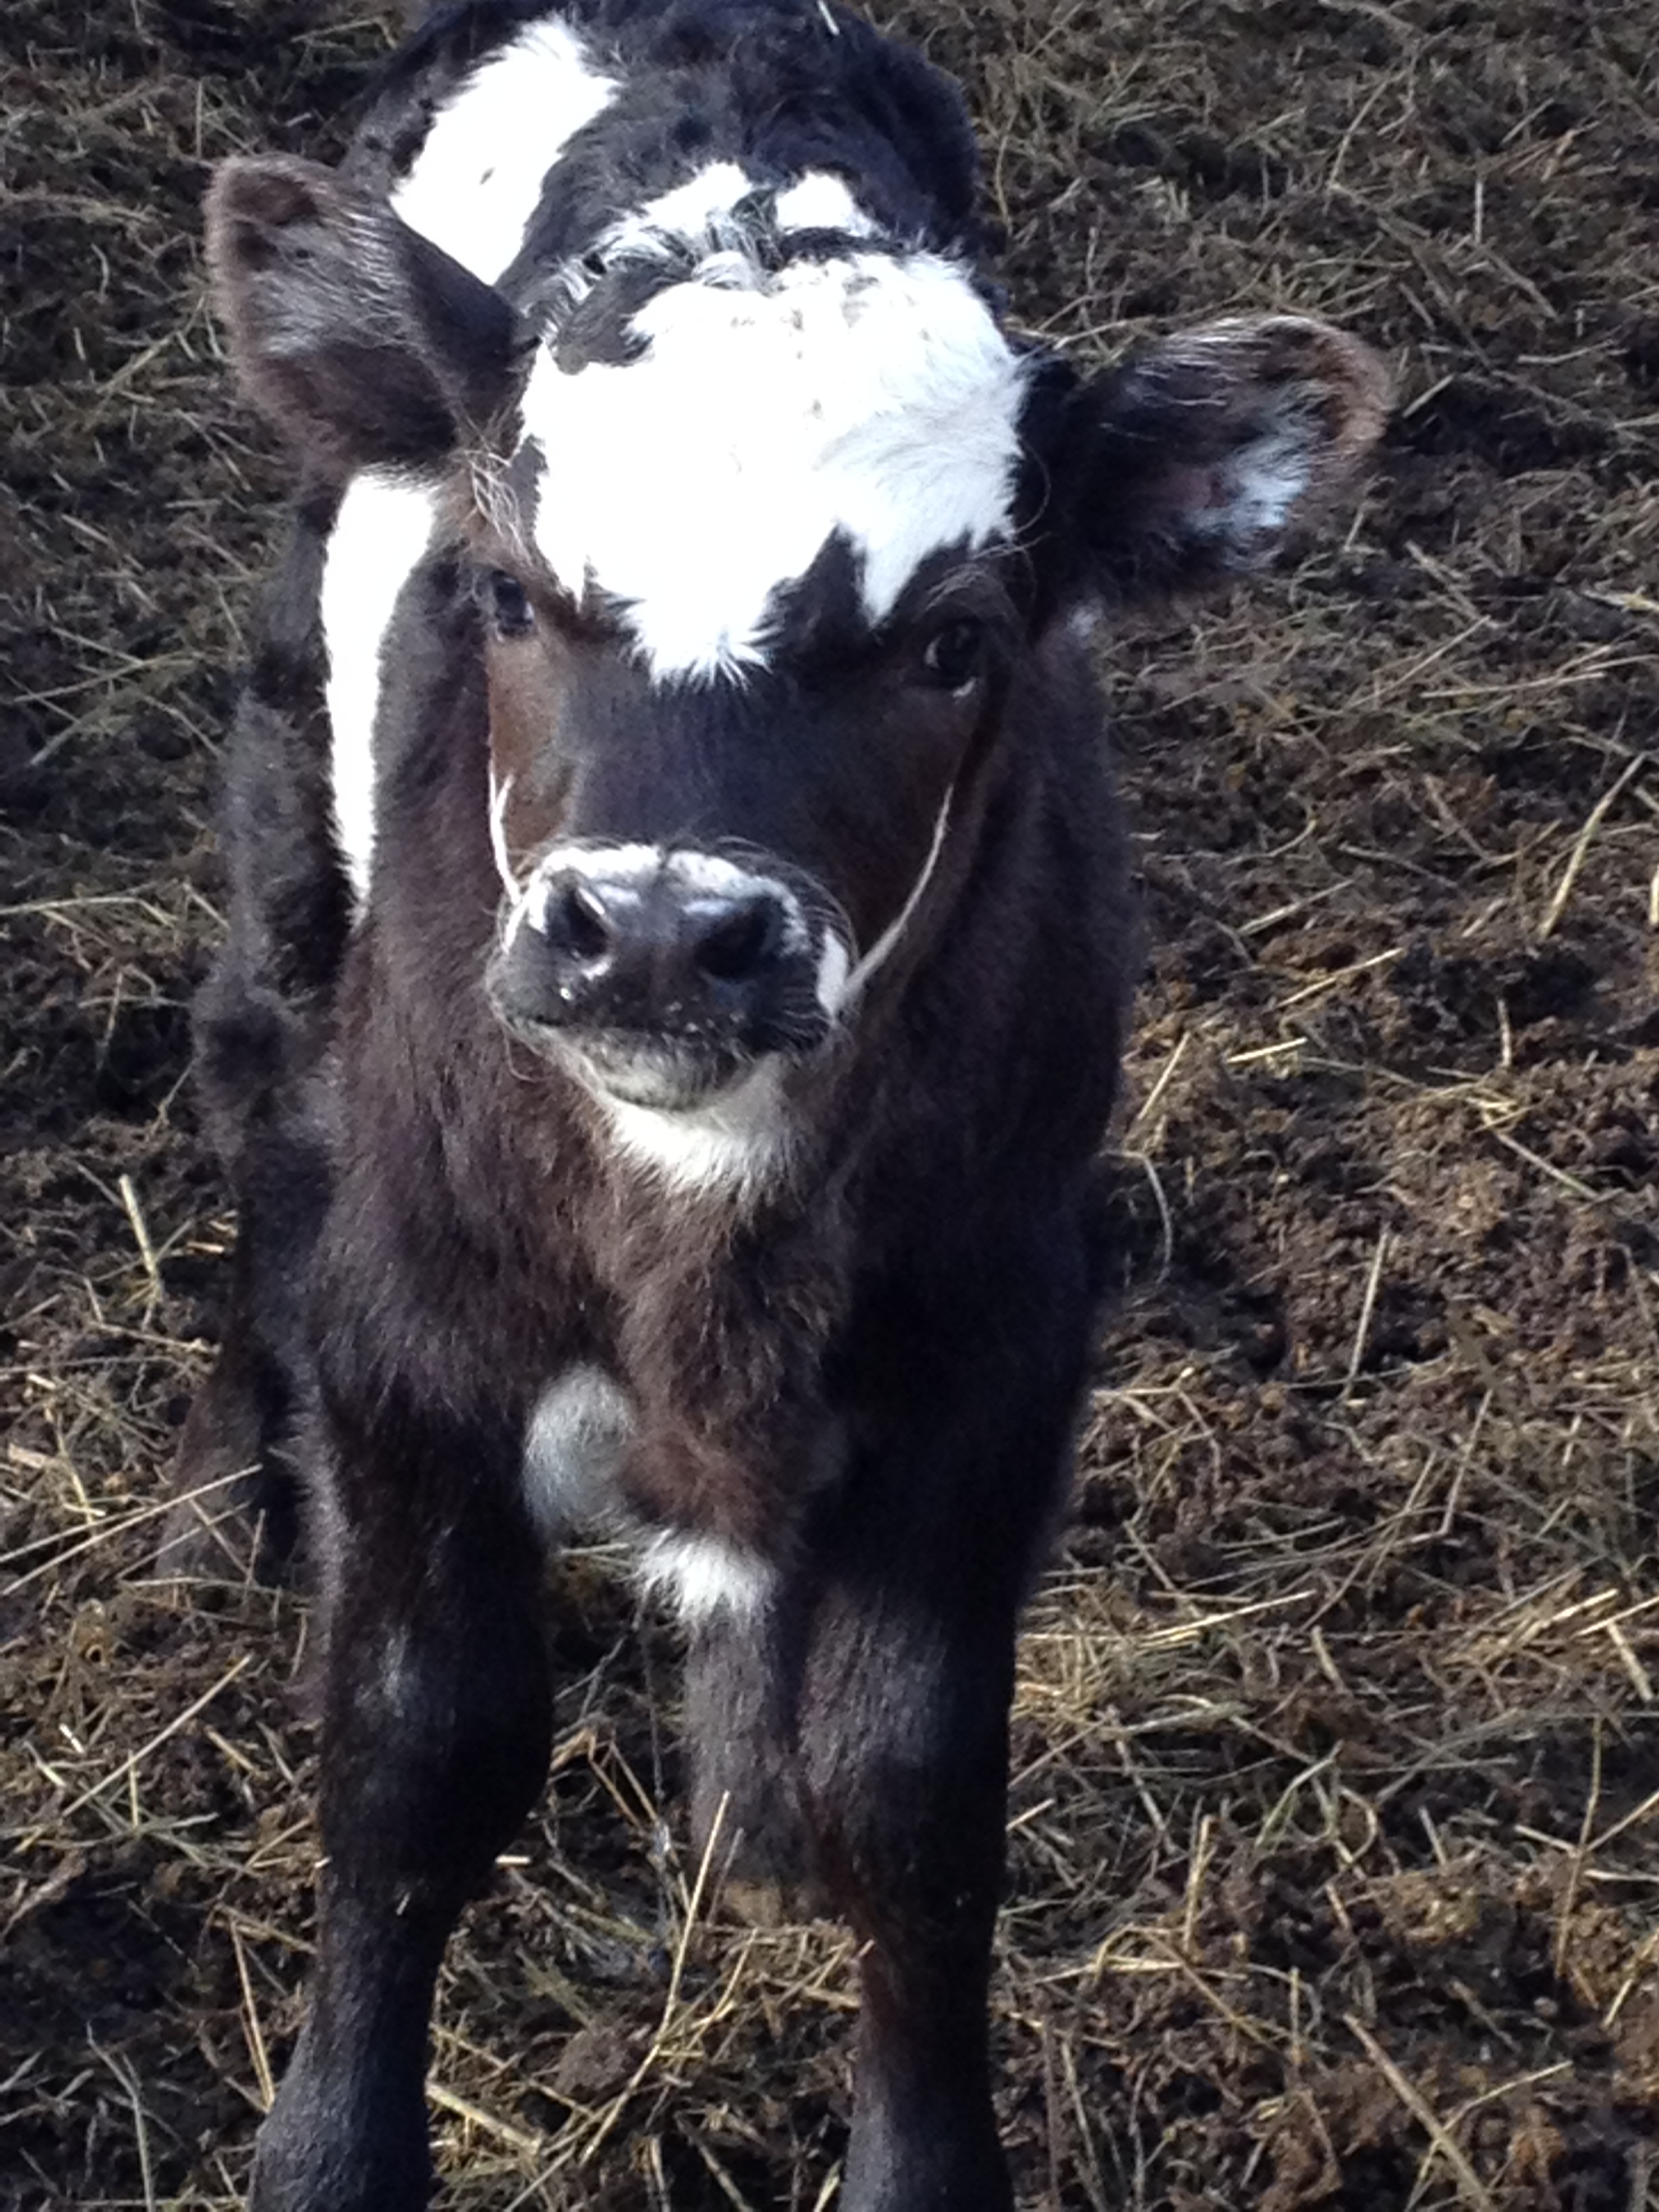 Patches the steer born November 16, 2014.